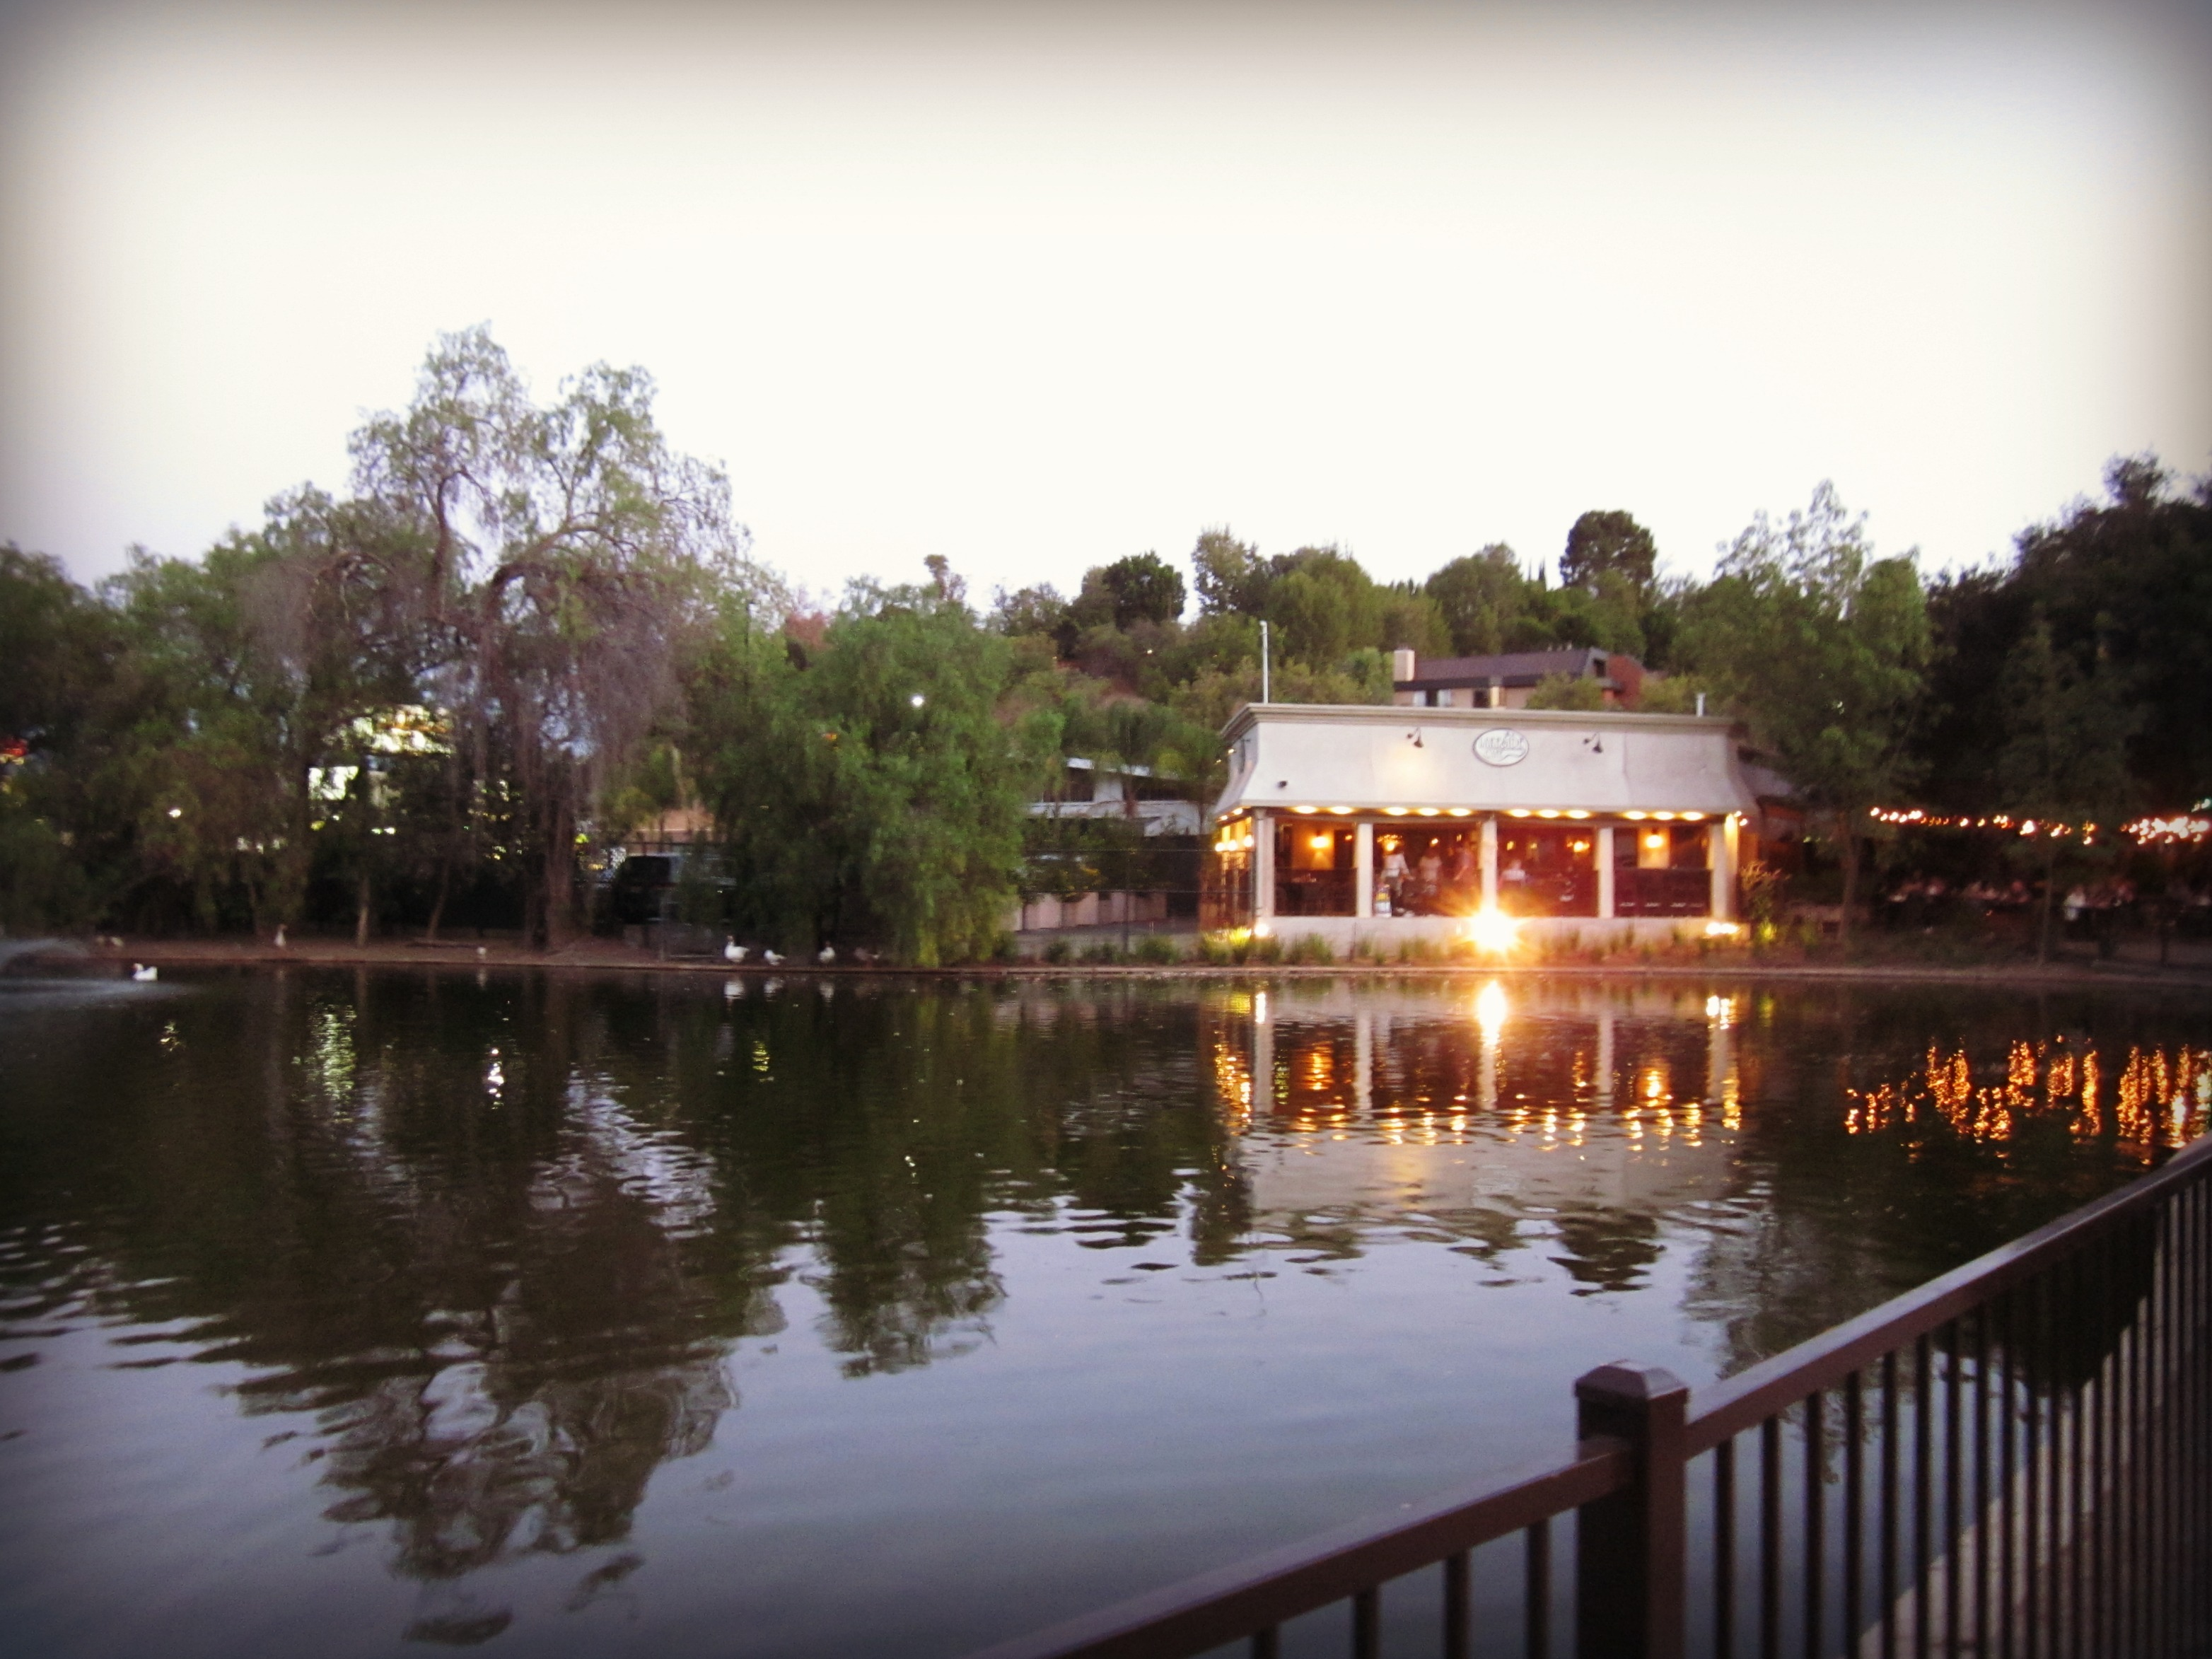 Lakeside Cafe, Encino, CA